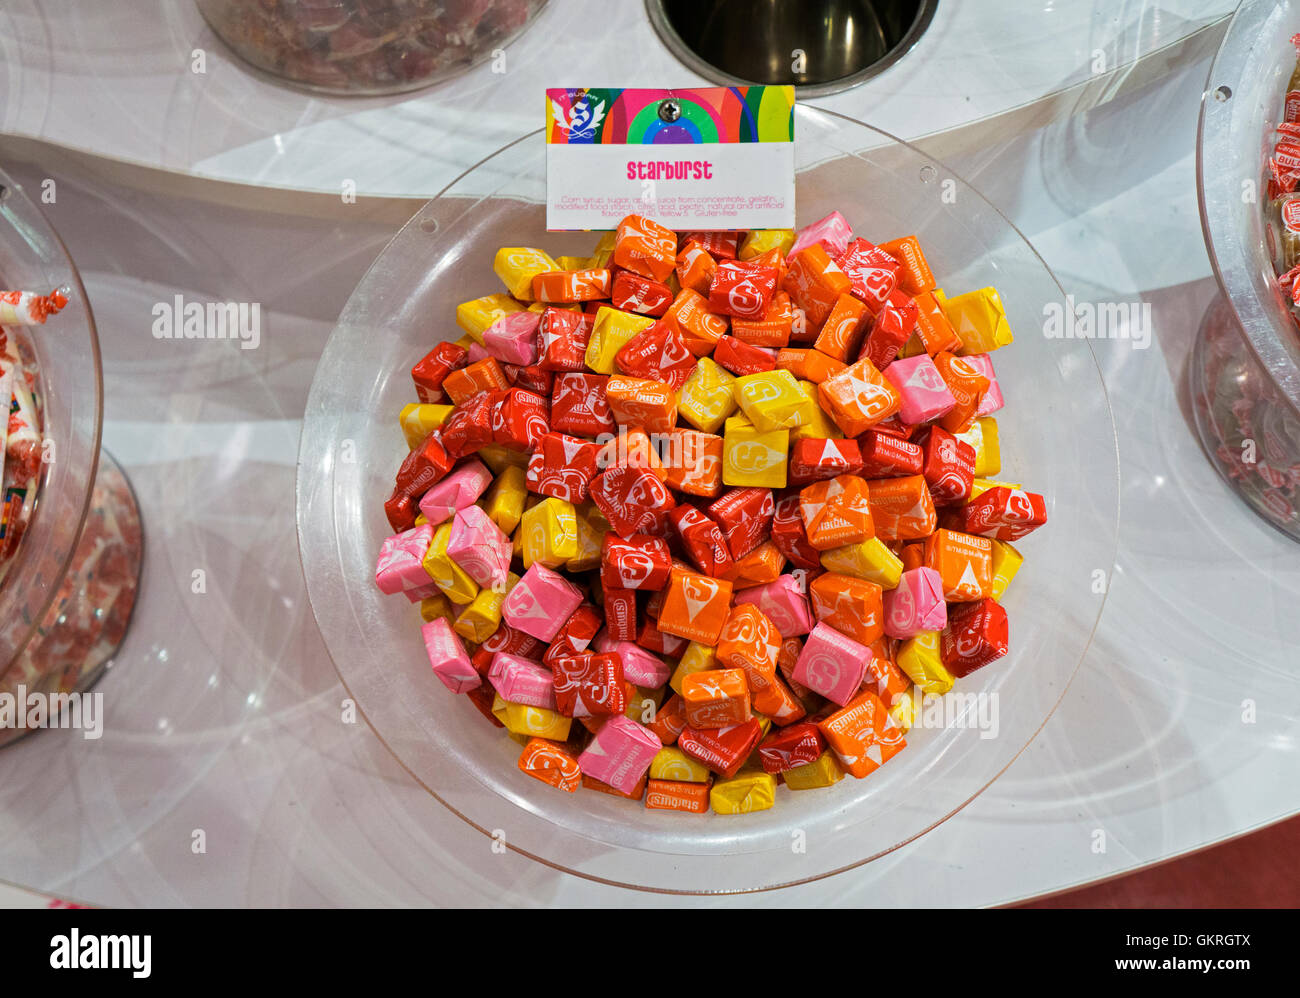 Interior of IT'SUGAR store on Broadway in Greenwich Village. A display of STARBURST candy for sale by the ounce. - Stock Image